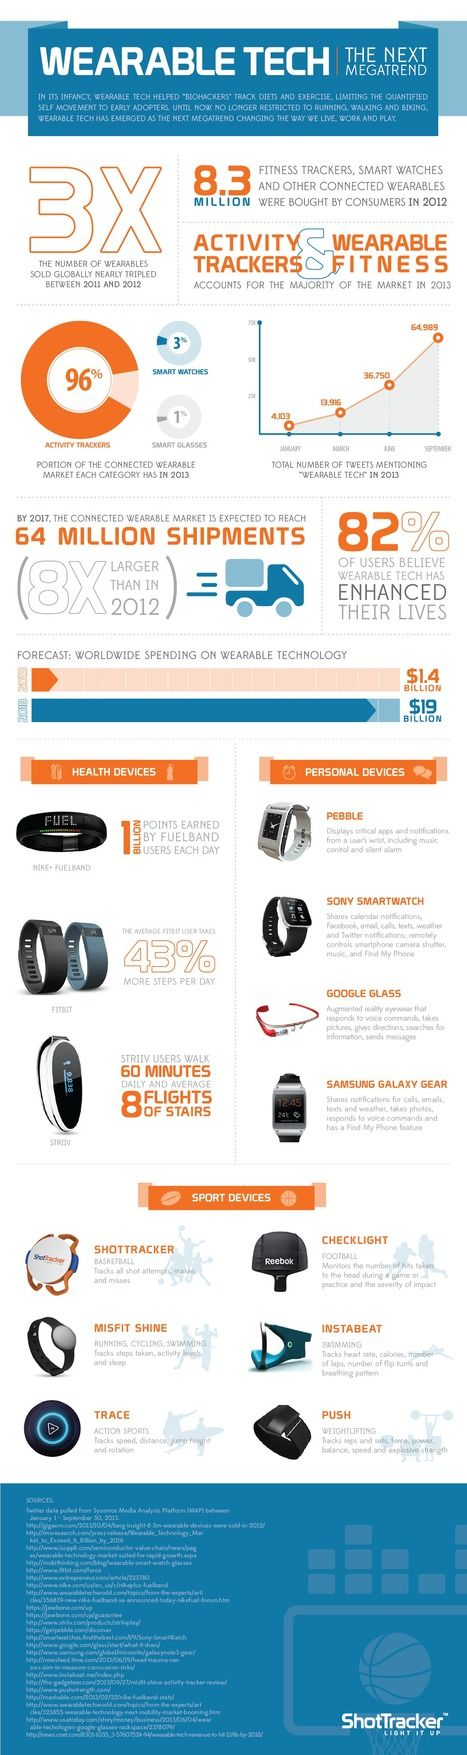 Infographic: The Future of Wearable Technology in Healthcare | Quantified Self, Lifestyle Design, Digital Health, Personal Analytics, Big Da...